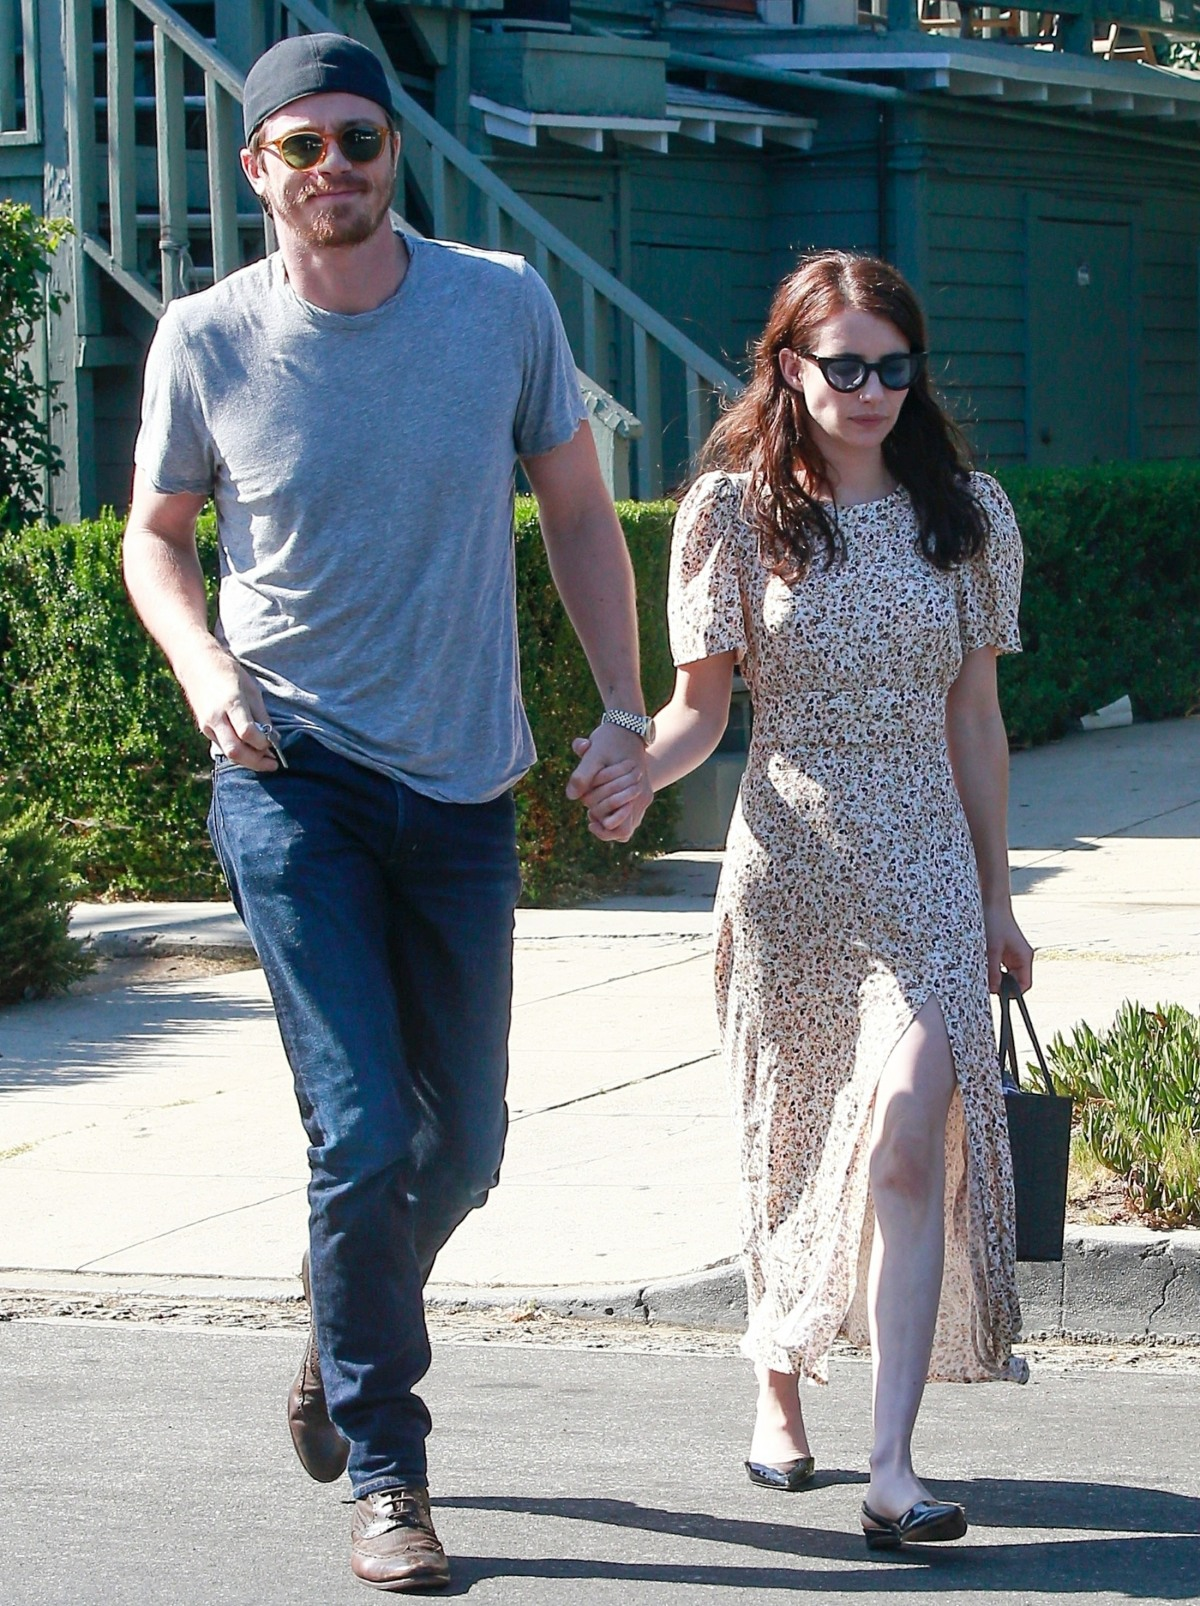 Emma Roberts and Garrett Hedlund hold hands as they head to the movies